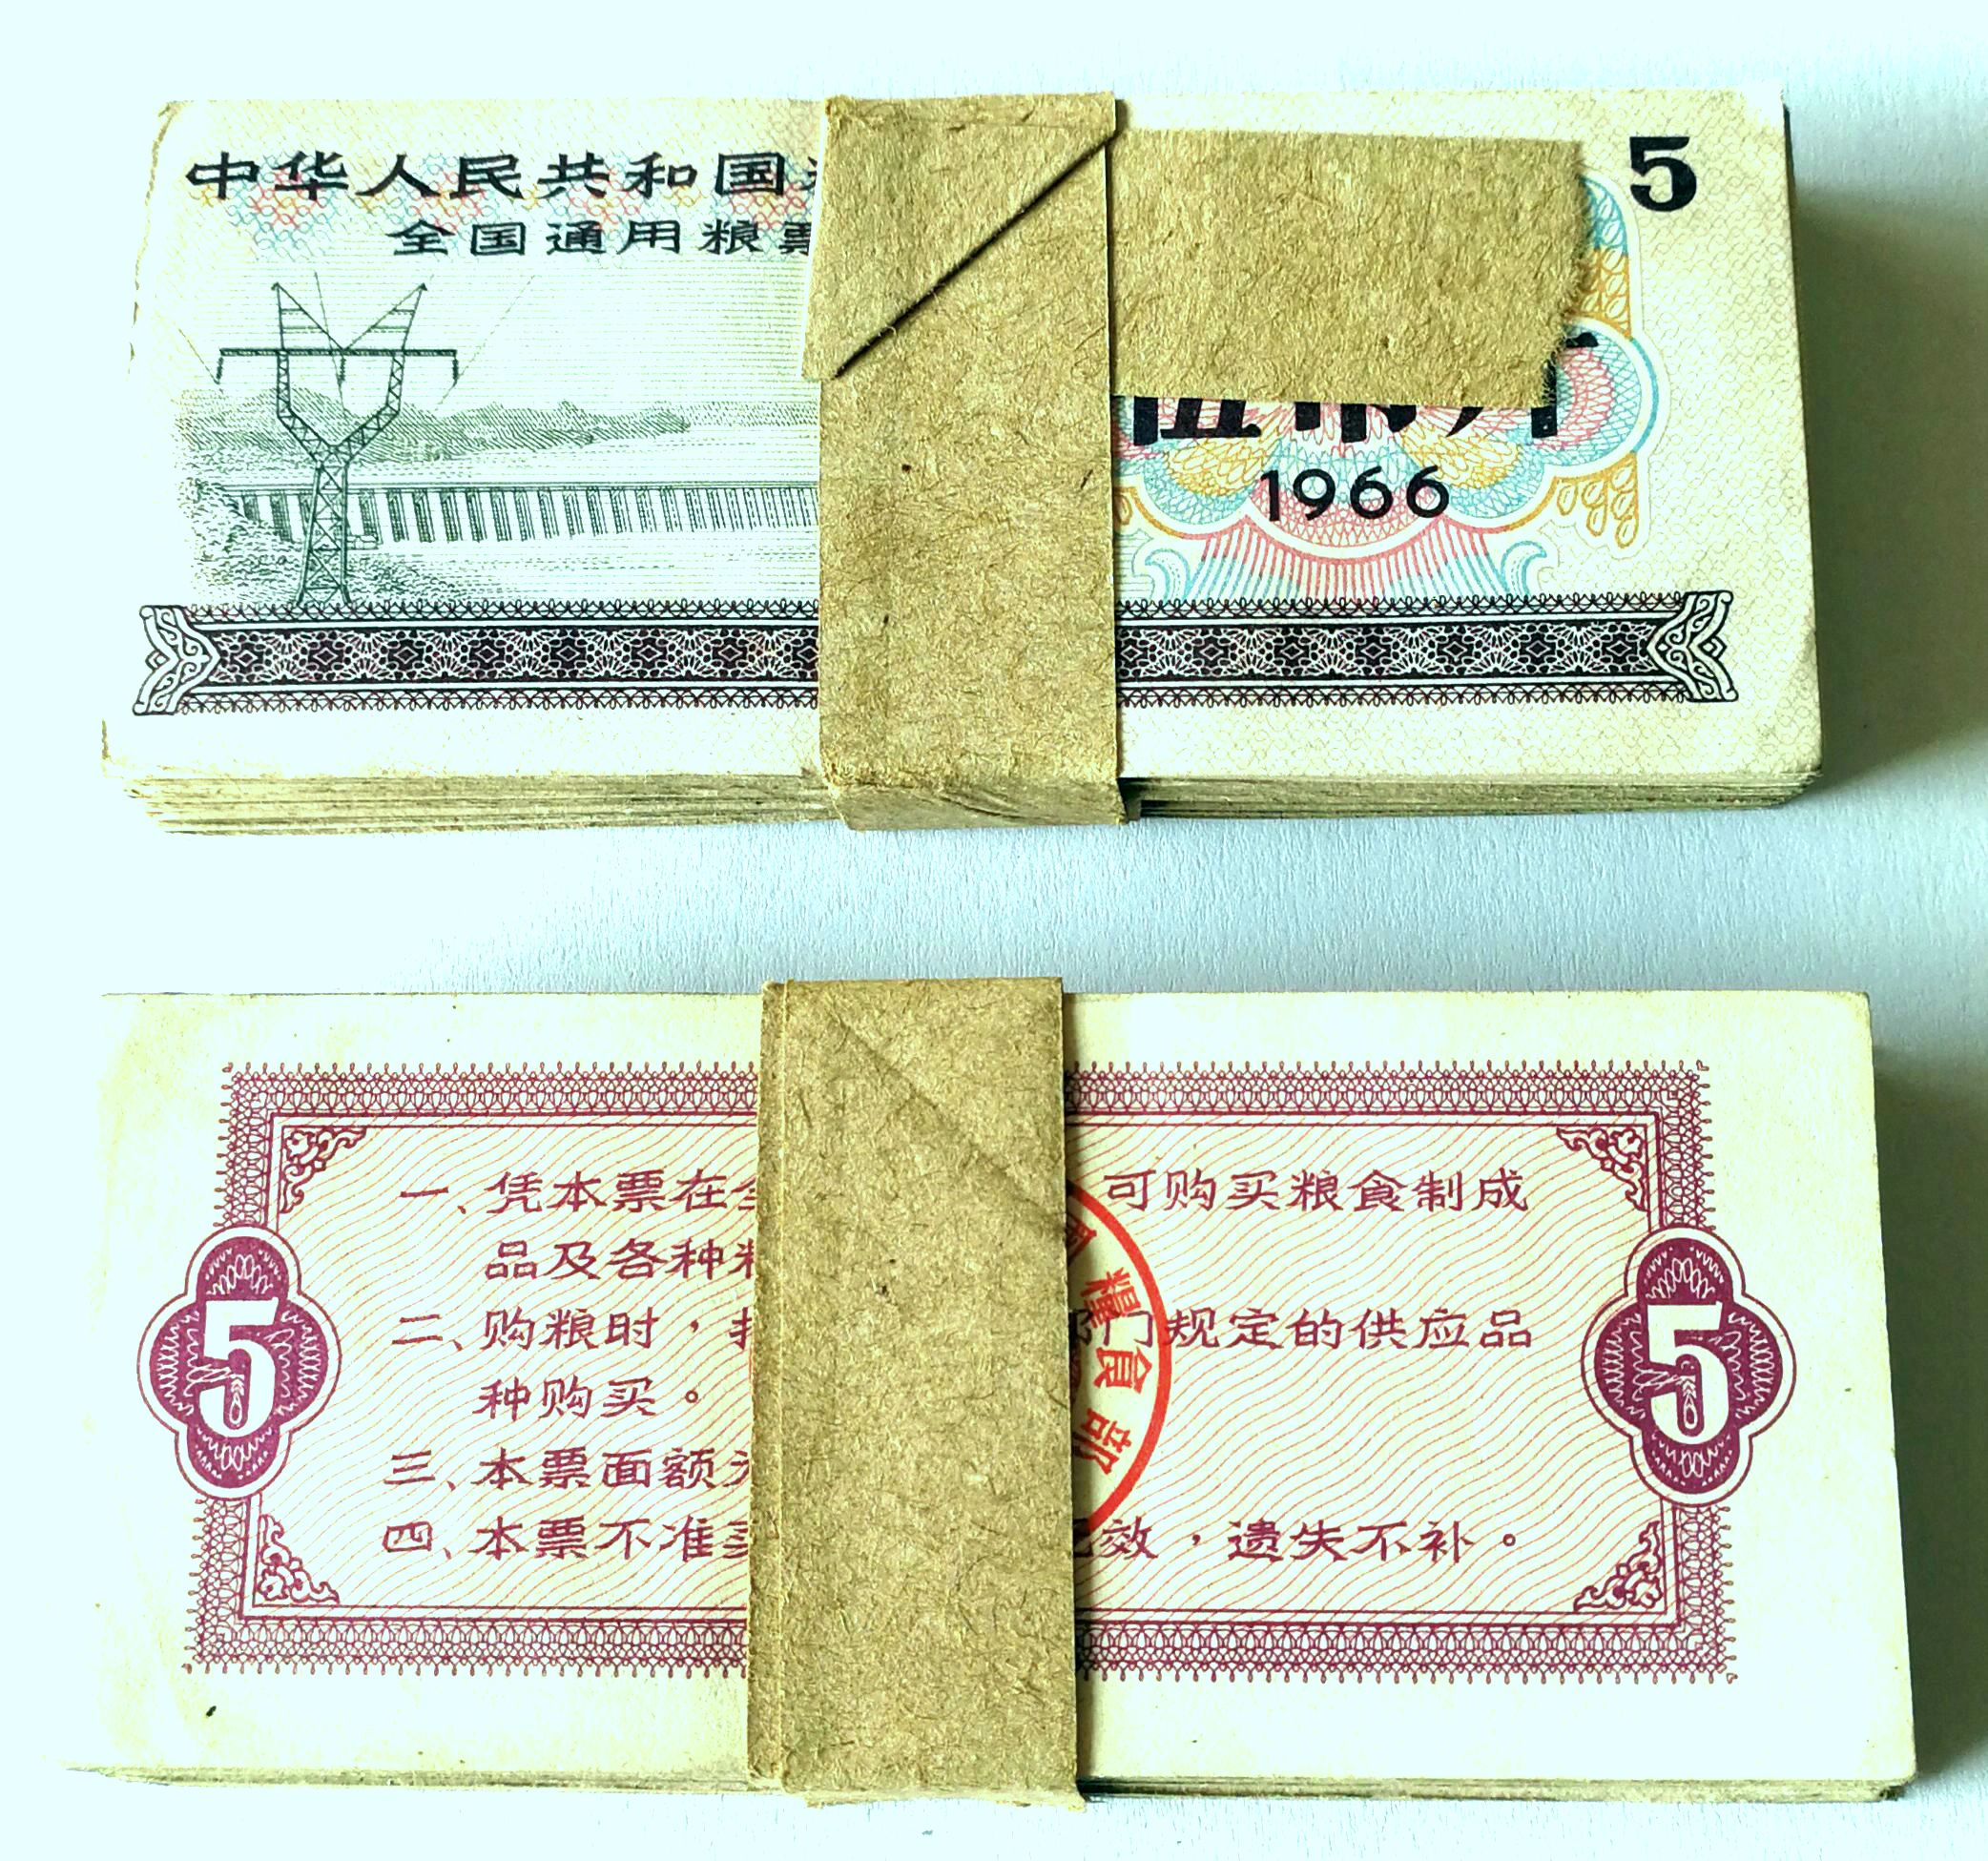 H0938, China 1966 National Food Ration Coupon, 5 Jin, 100 Pcs Wholesale